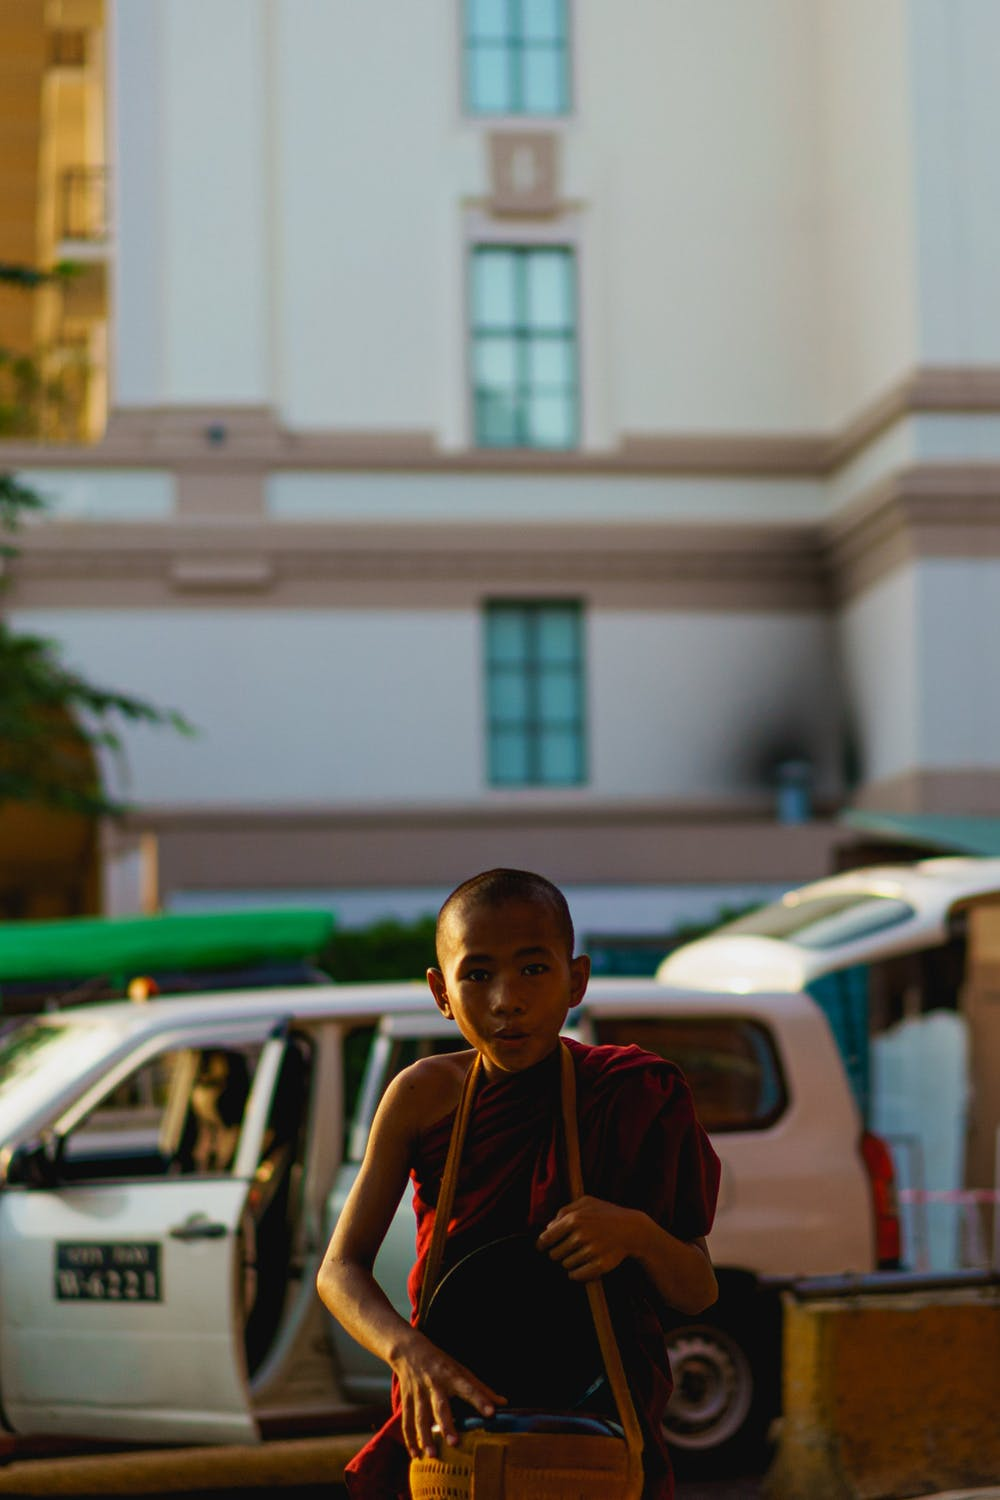 Young Burmese Buddhist monk carrying a bag and walking in Yangon Myanmar